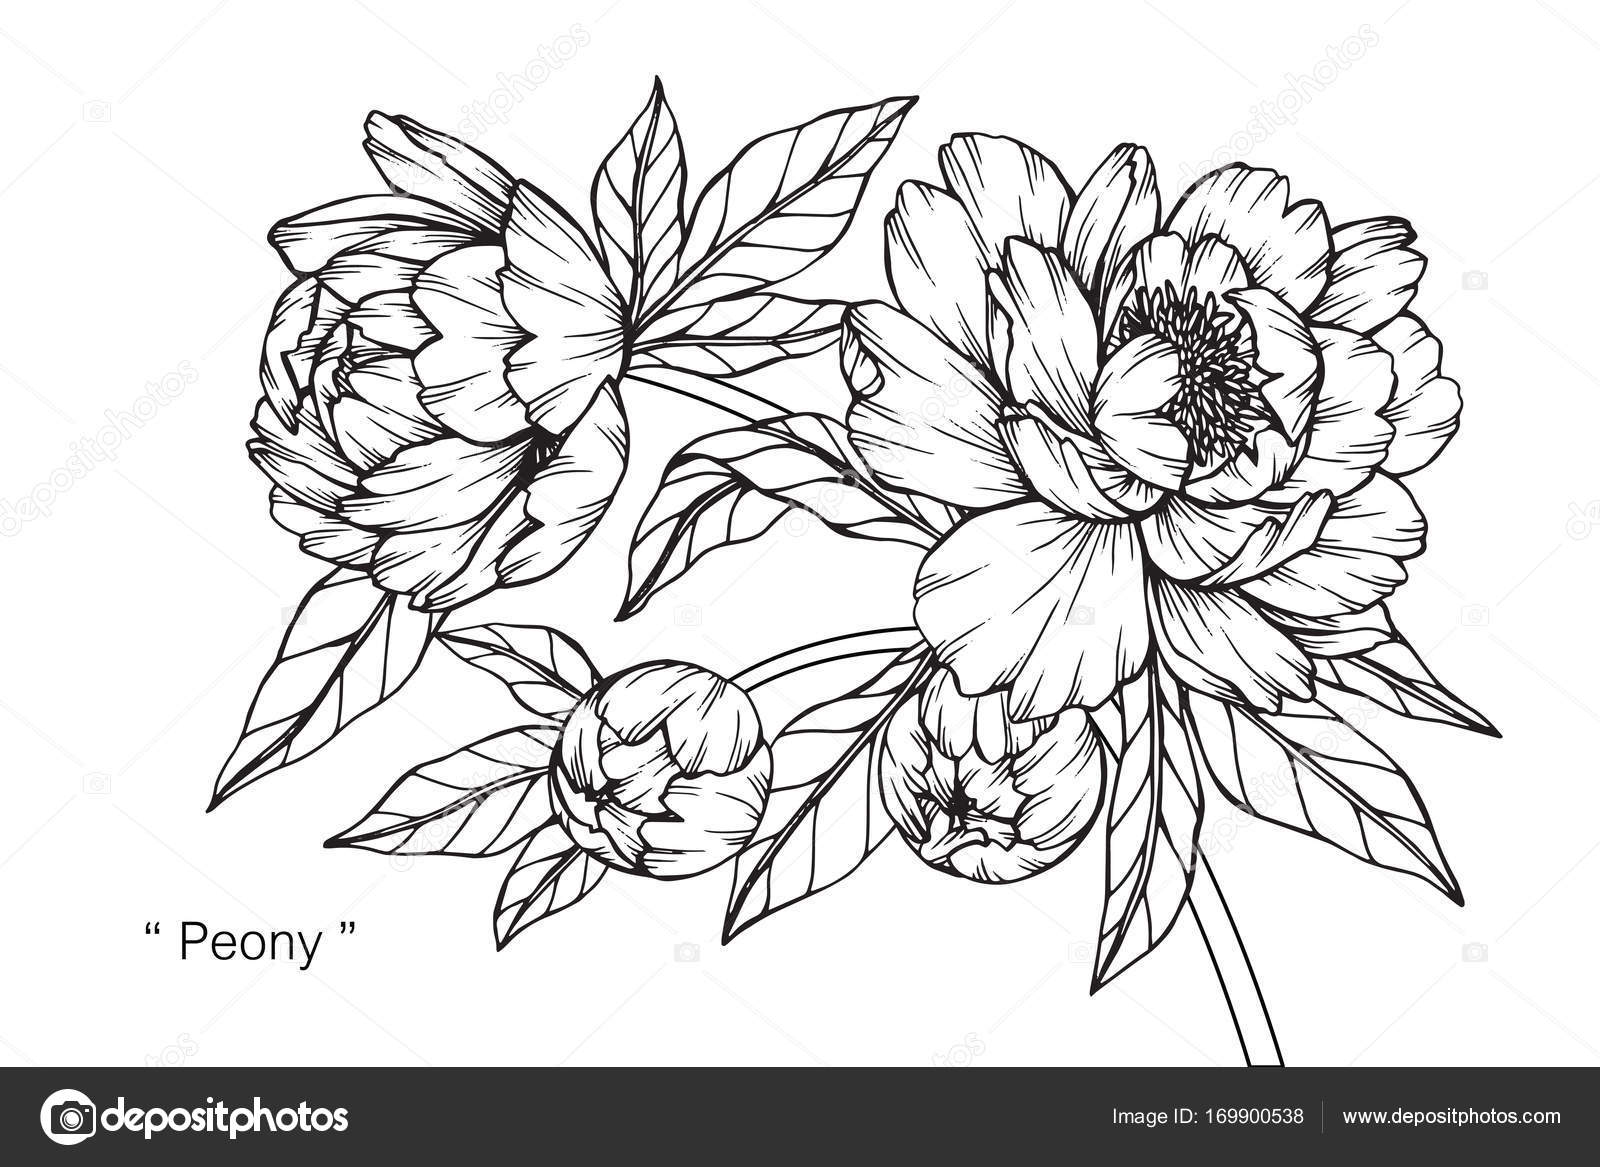 peony flower drawing sketch black white line art � stock